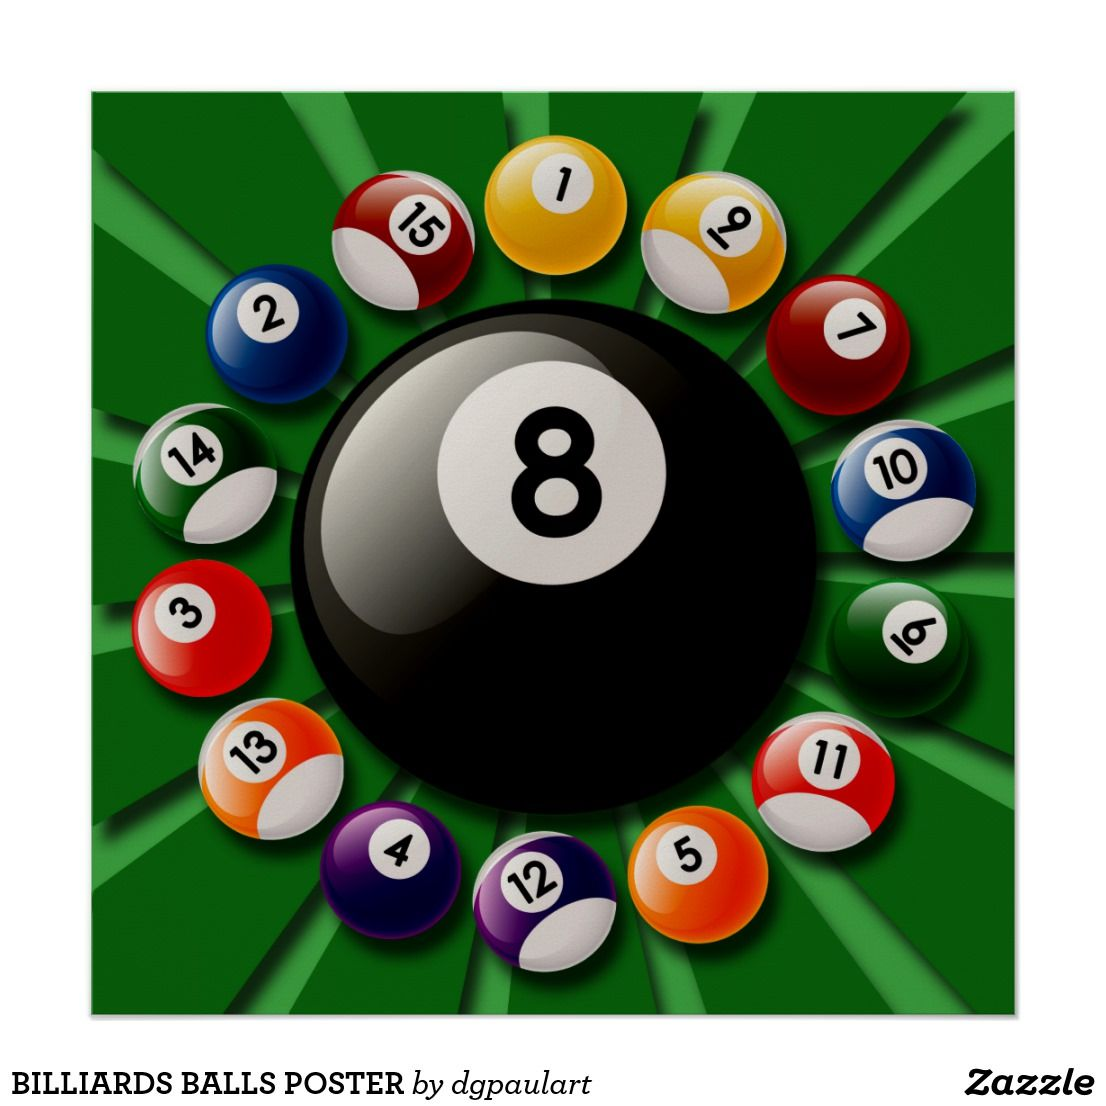 Billiards Balls Poster Zazzle Com In 2021 Billiards Billiard Balls Pool Balls